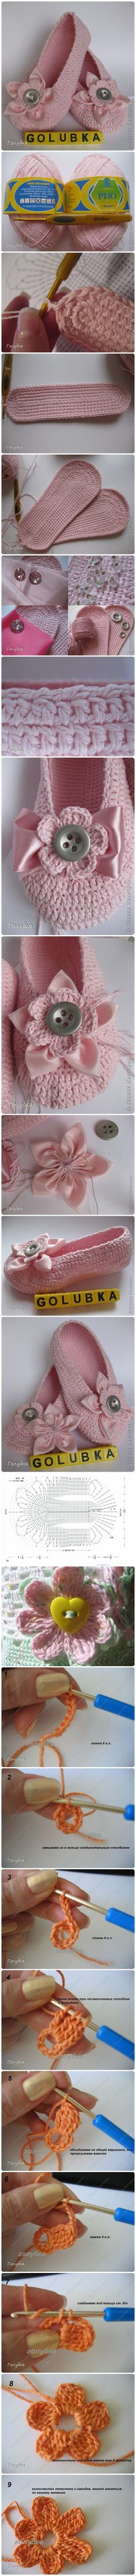 DIY Stylish Crochet Ballet Slippers tutorial